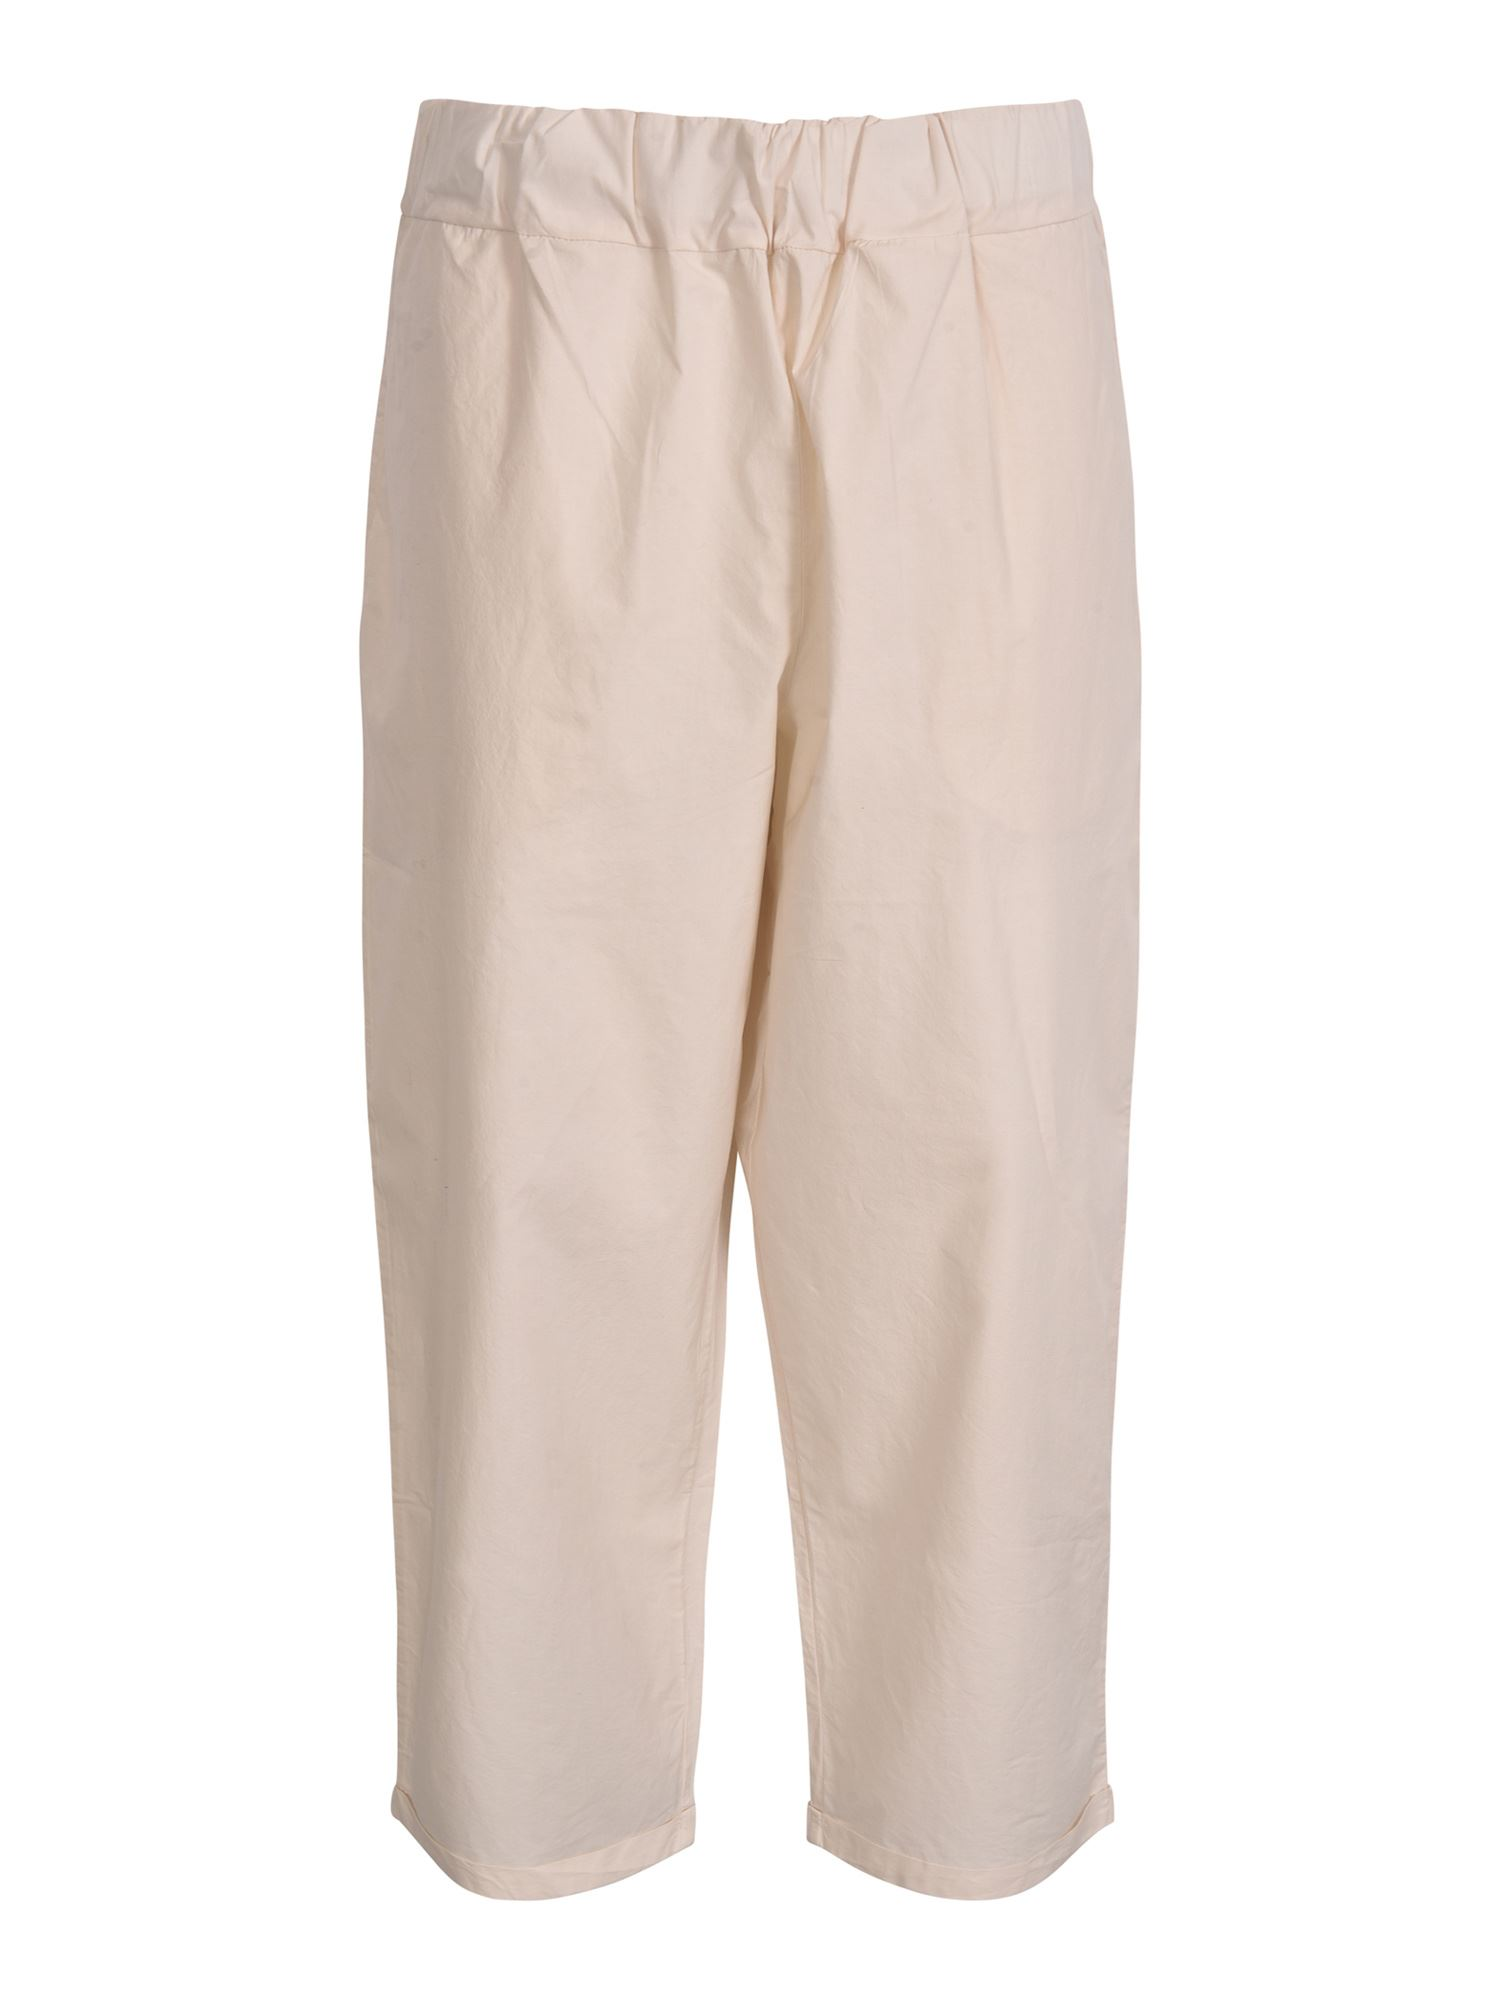 Labo.art VELA TROUSERS IN ROPE COLOR